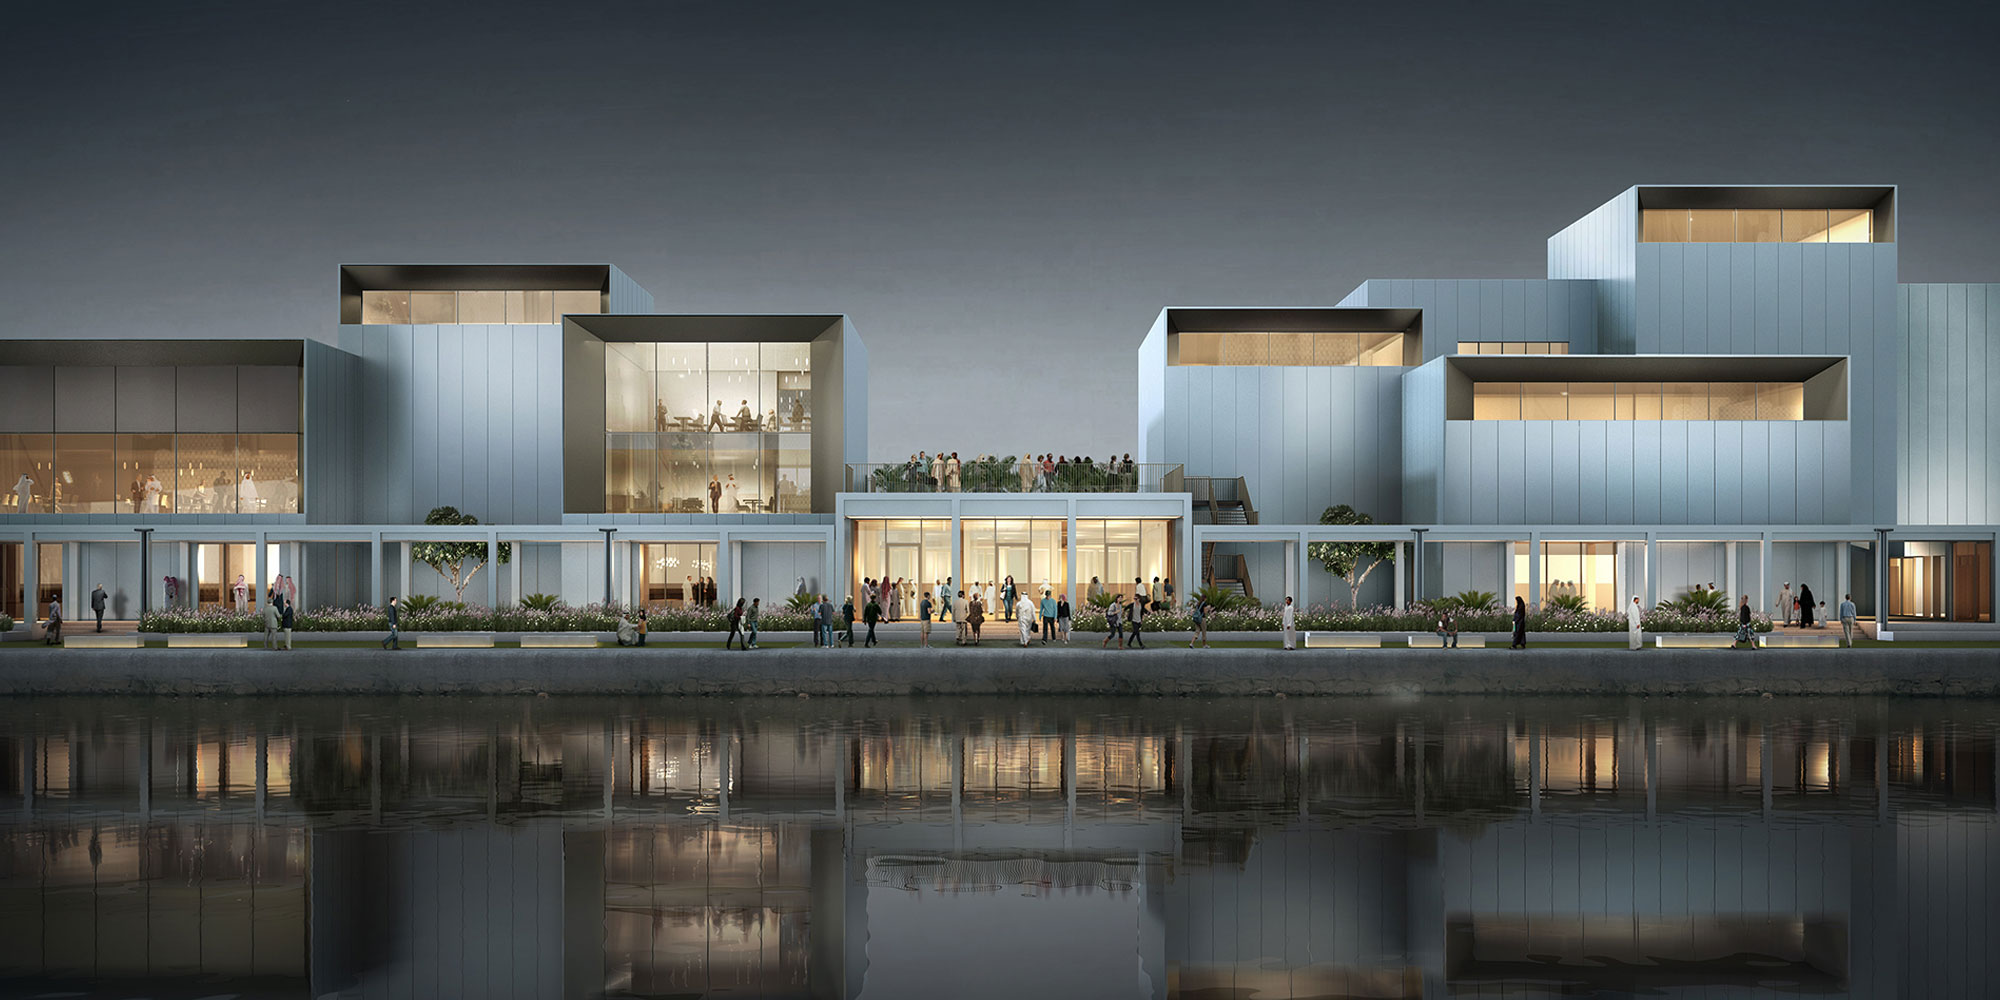 Jameel Arts Centre is due to open in Dubai in November 2018.